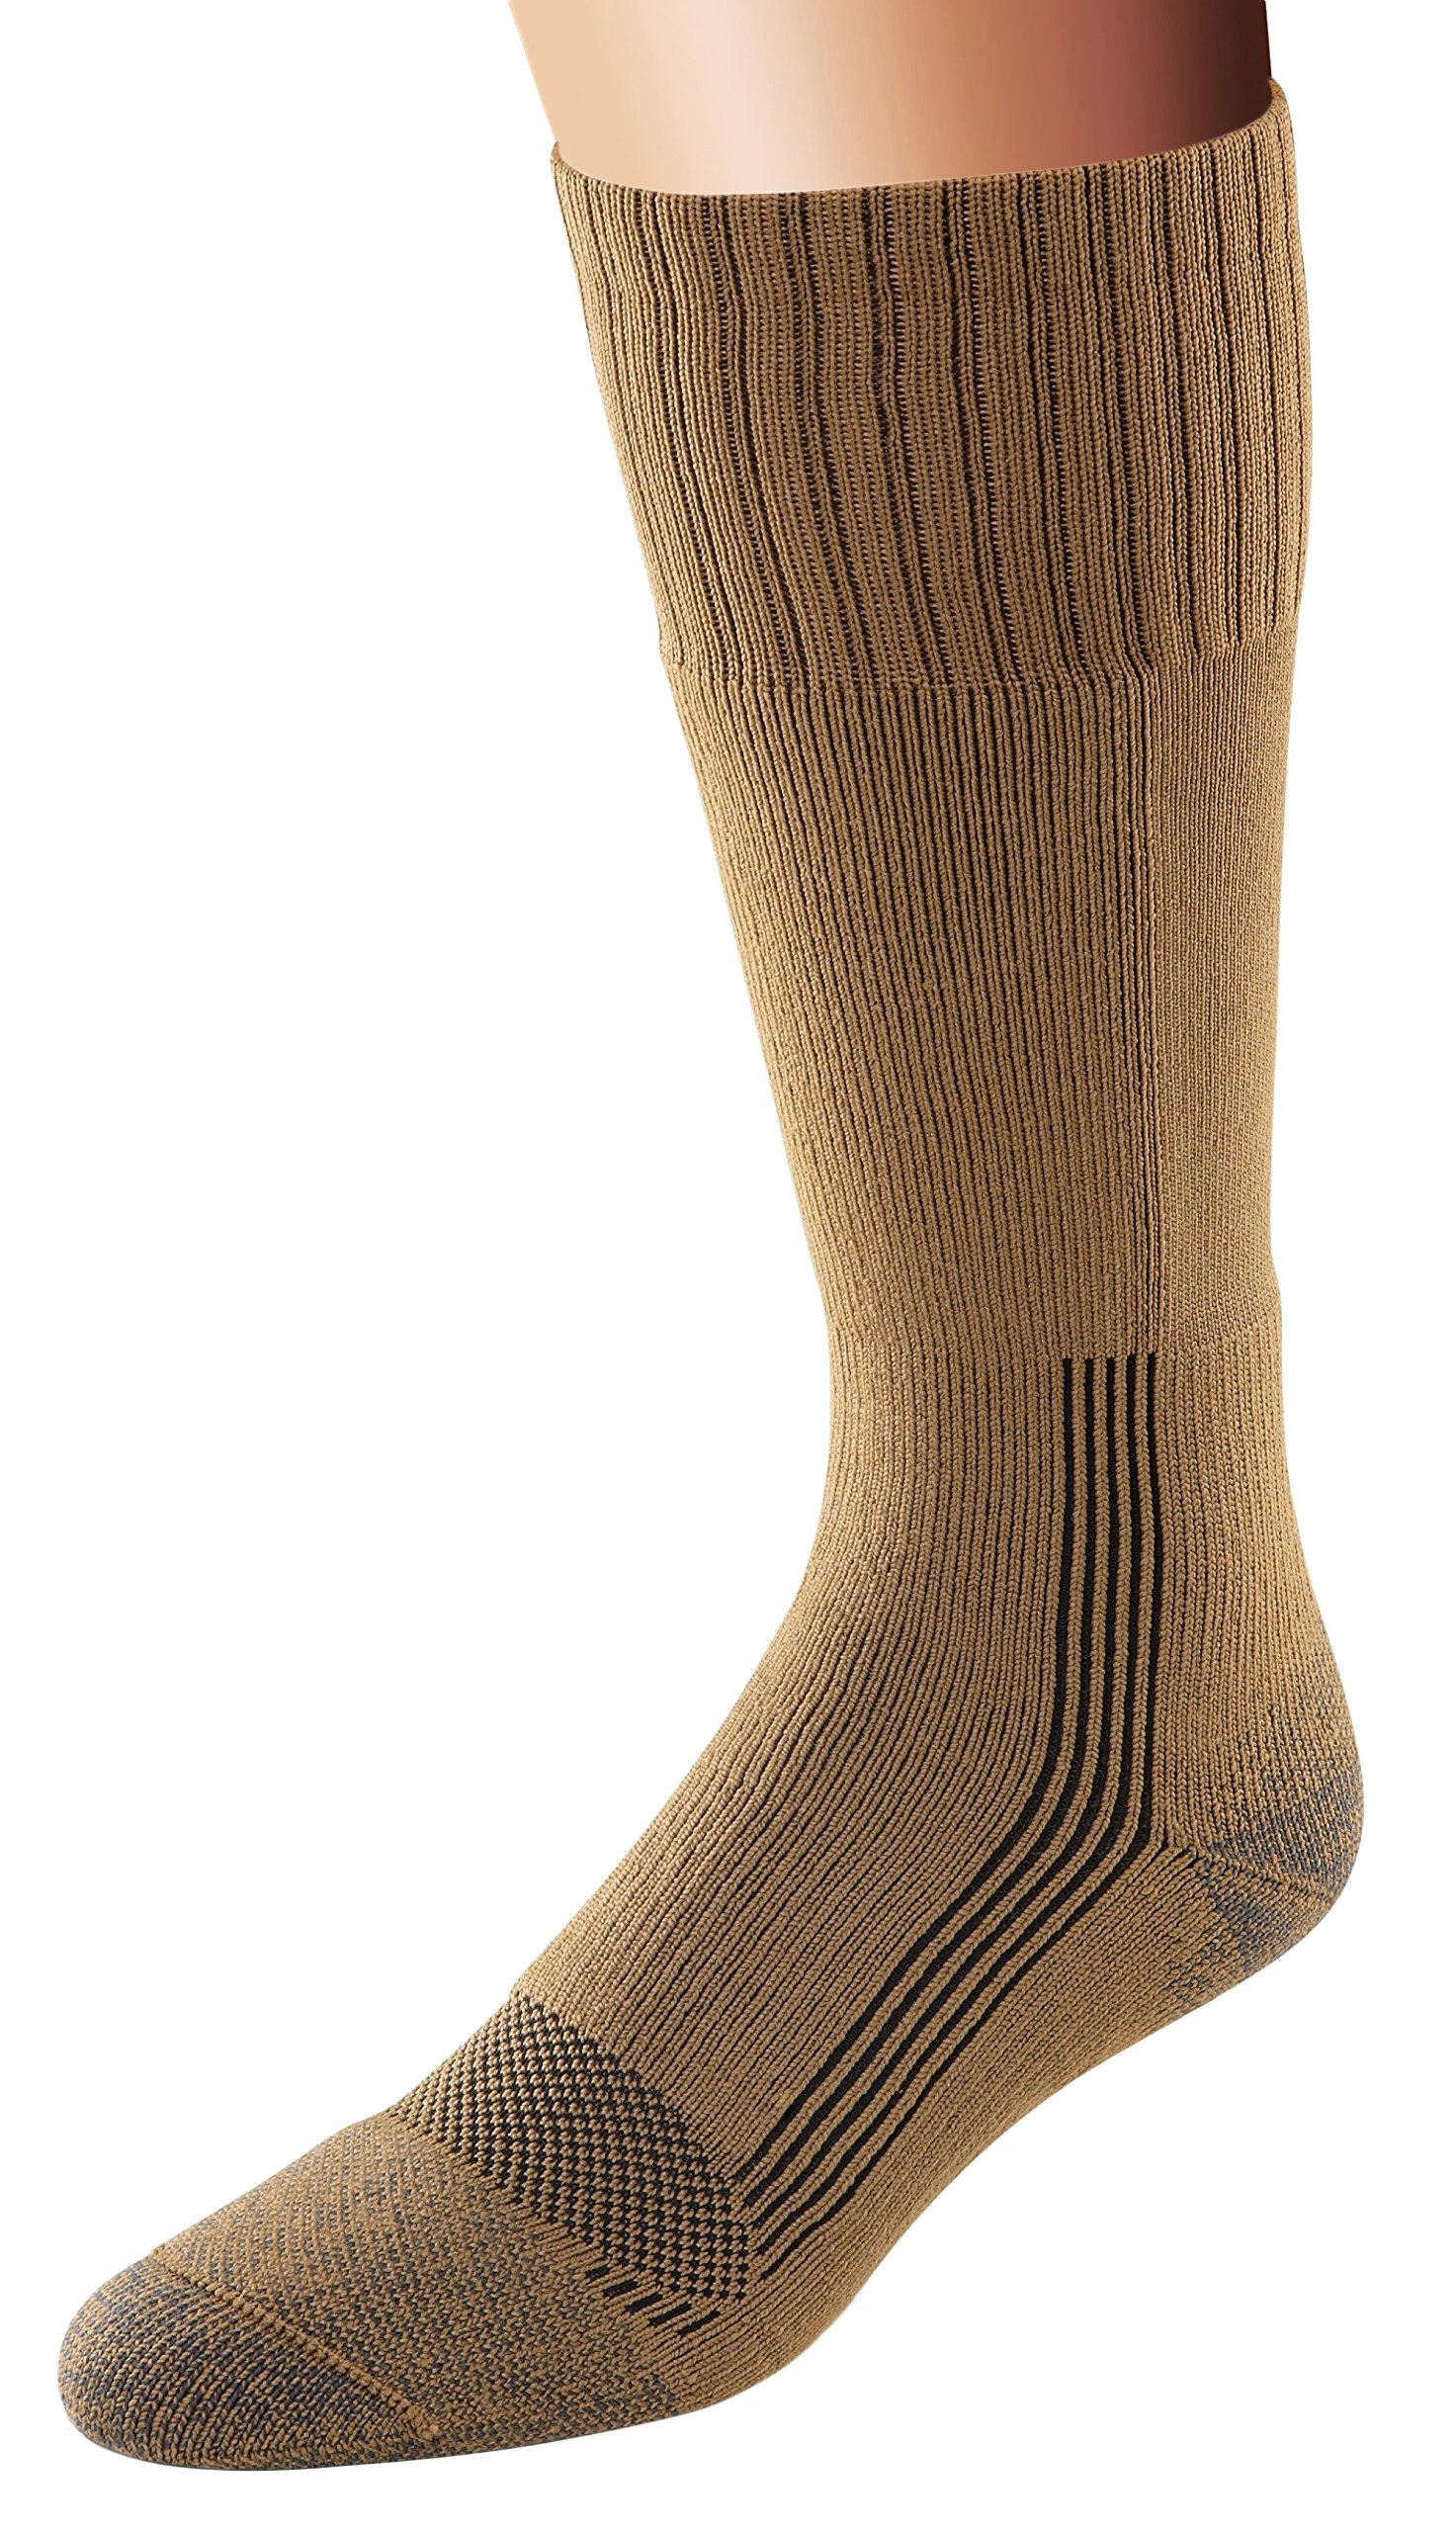 Fox River Military Wick Dry Maximum Mid Calf Boot Sock (Med/Coyote Brown) by FoxRiver